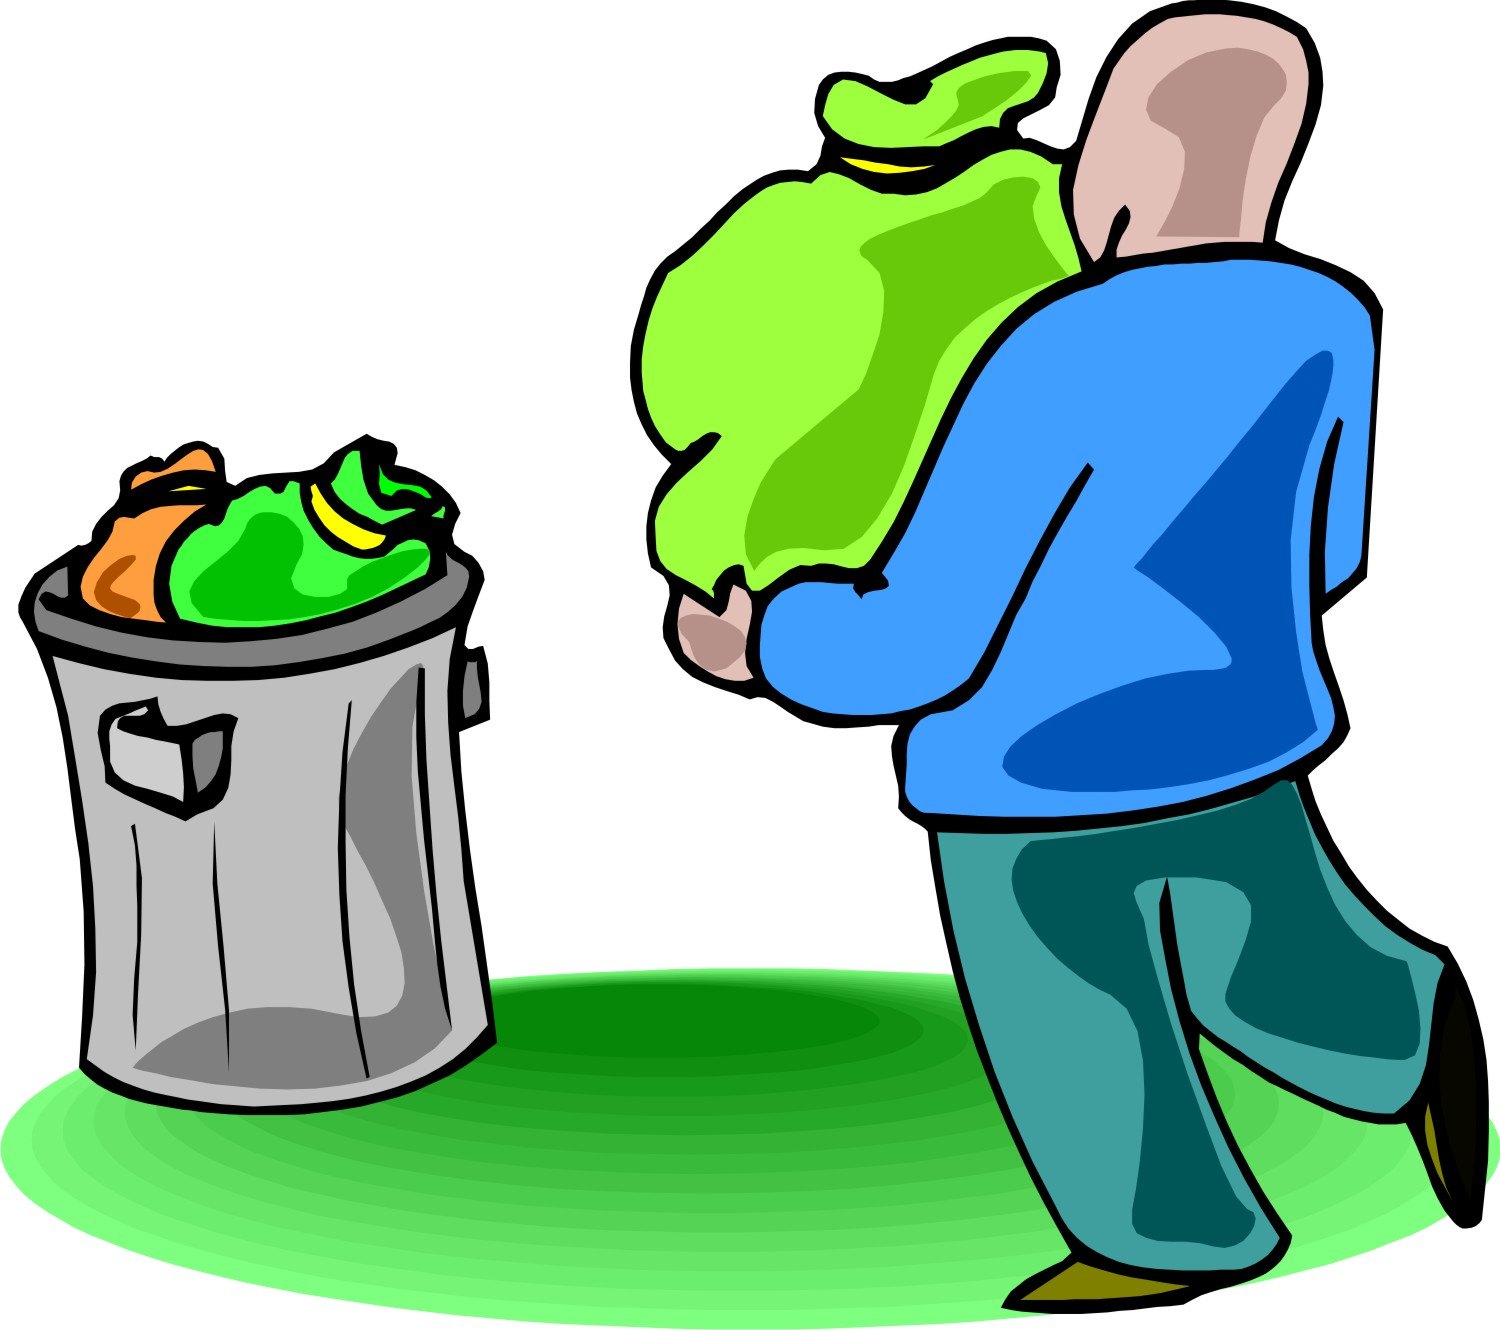 Throw away trash clipart.